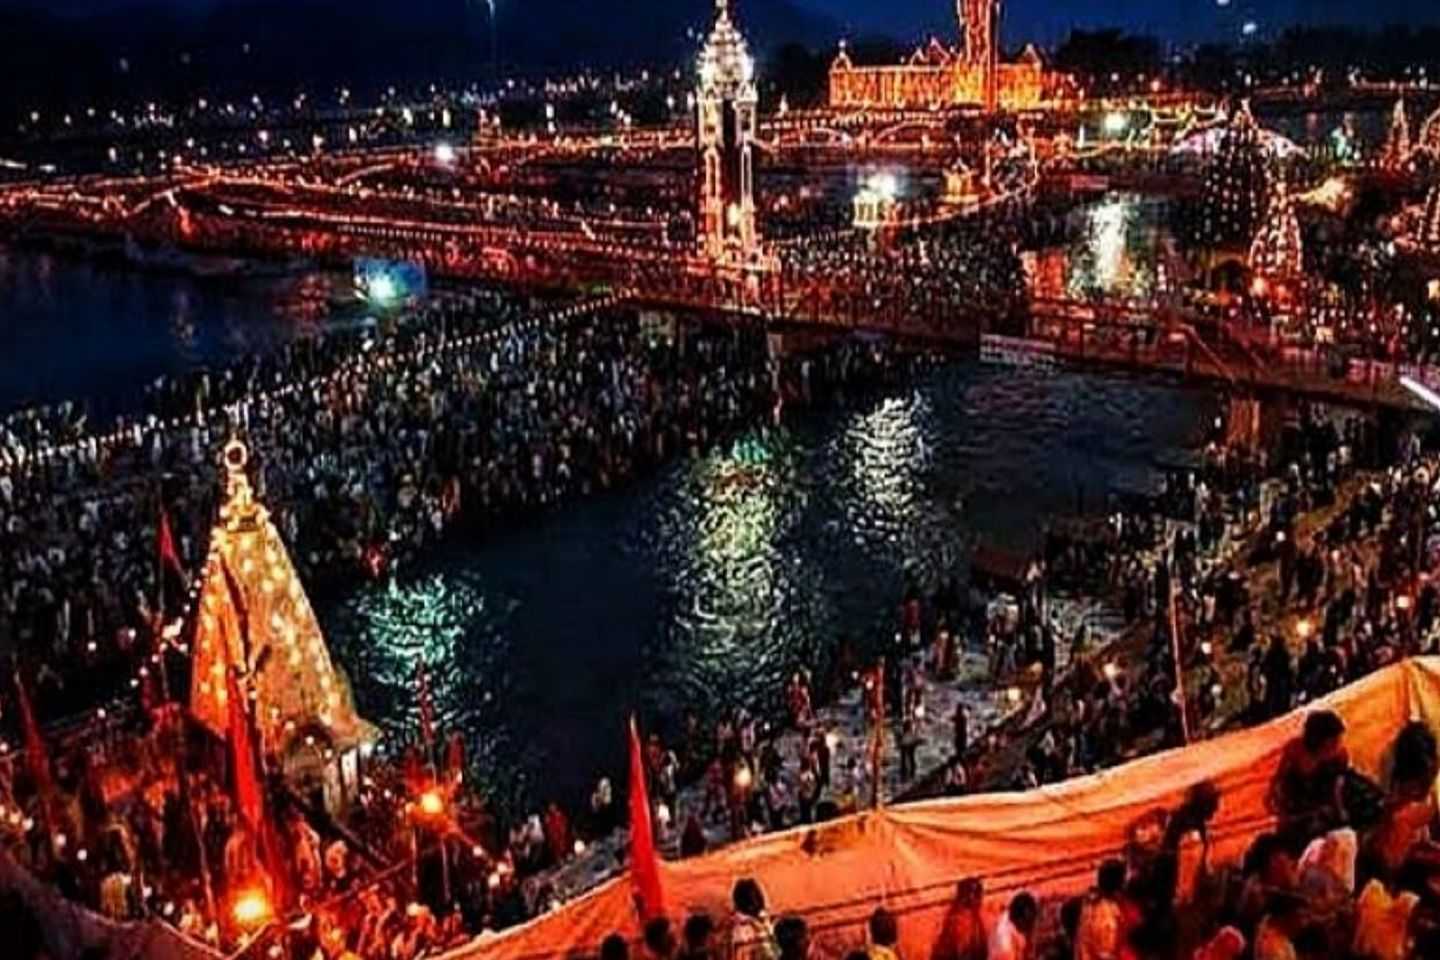 kumbh mela's relation with ujjain